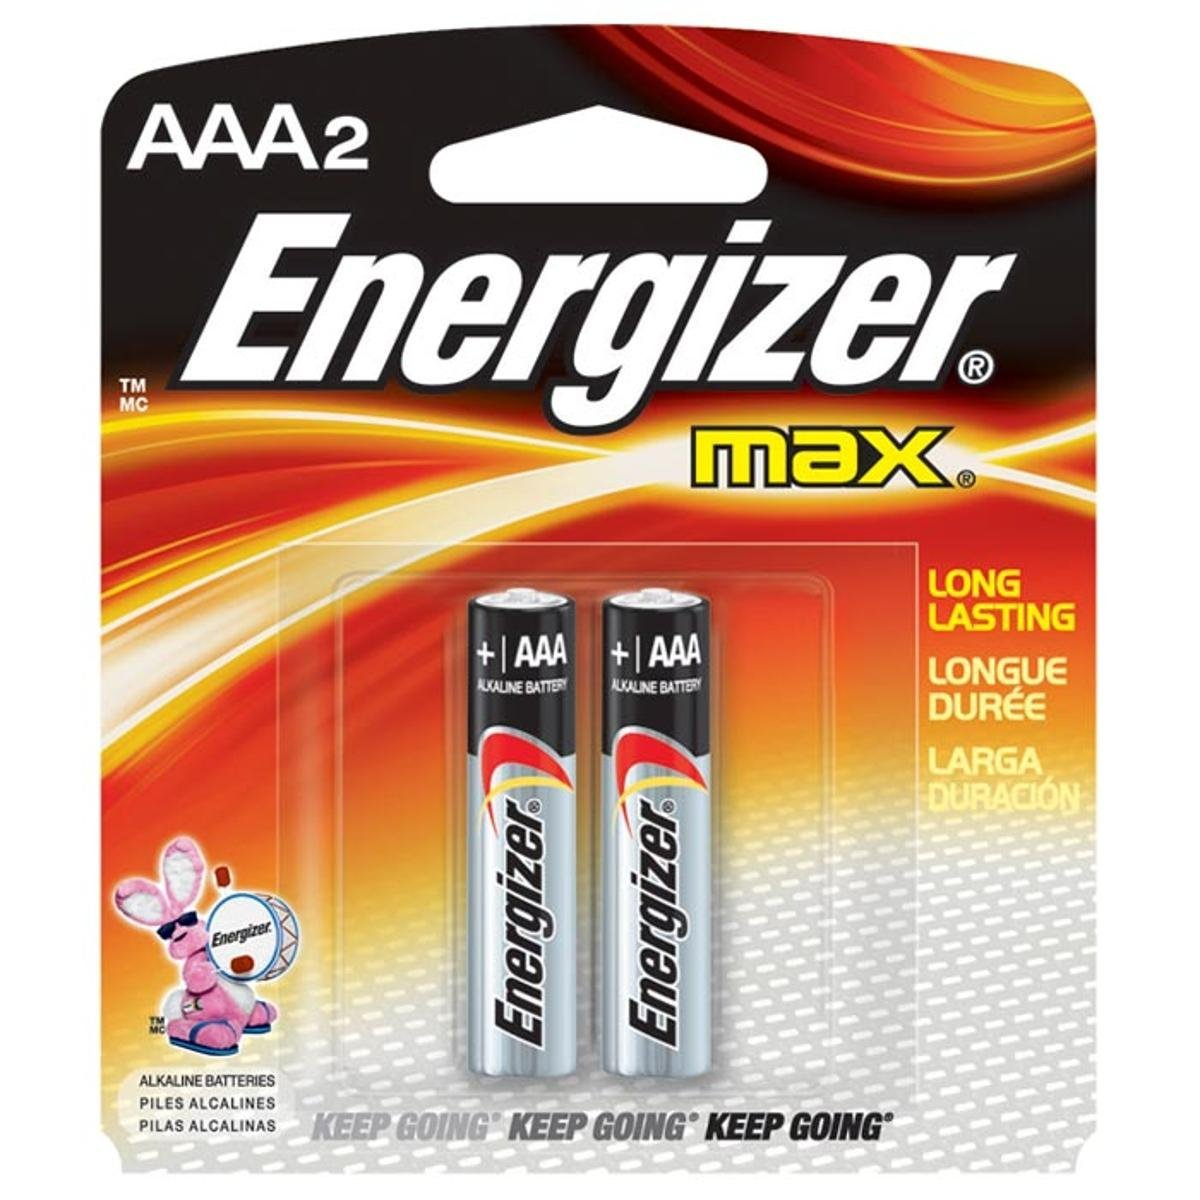 Energizer Max E92BP2 AAA 1.5V Alkaline Battery with Power Seal Technology (pkt/2pc)